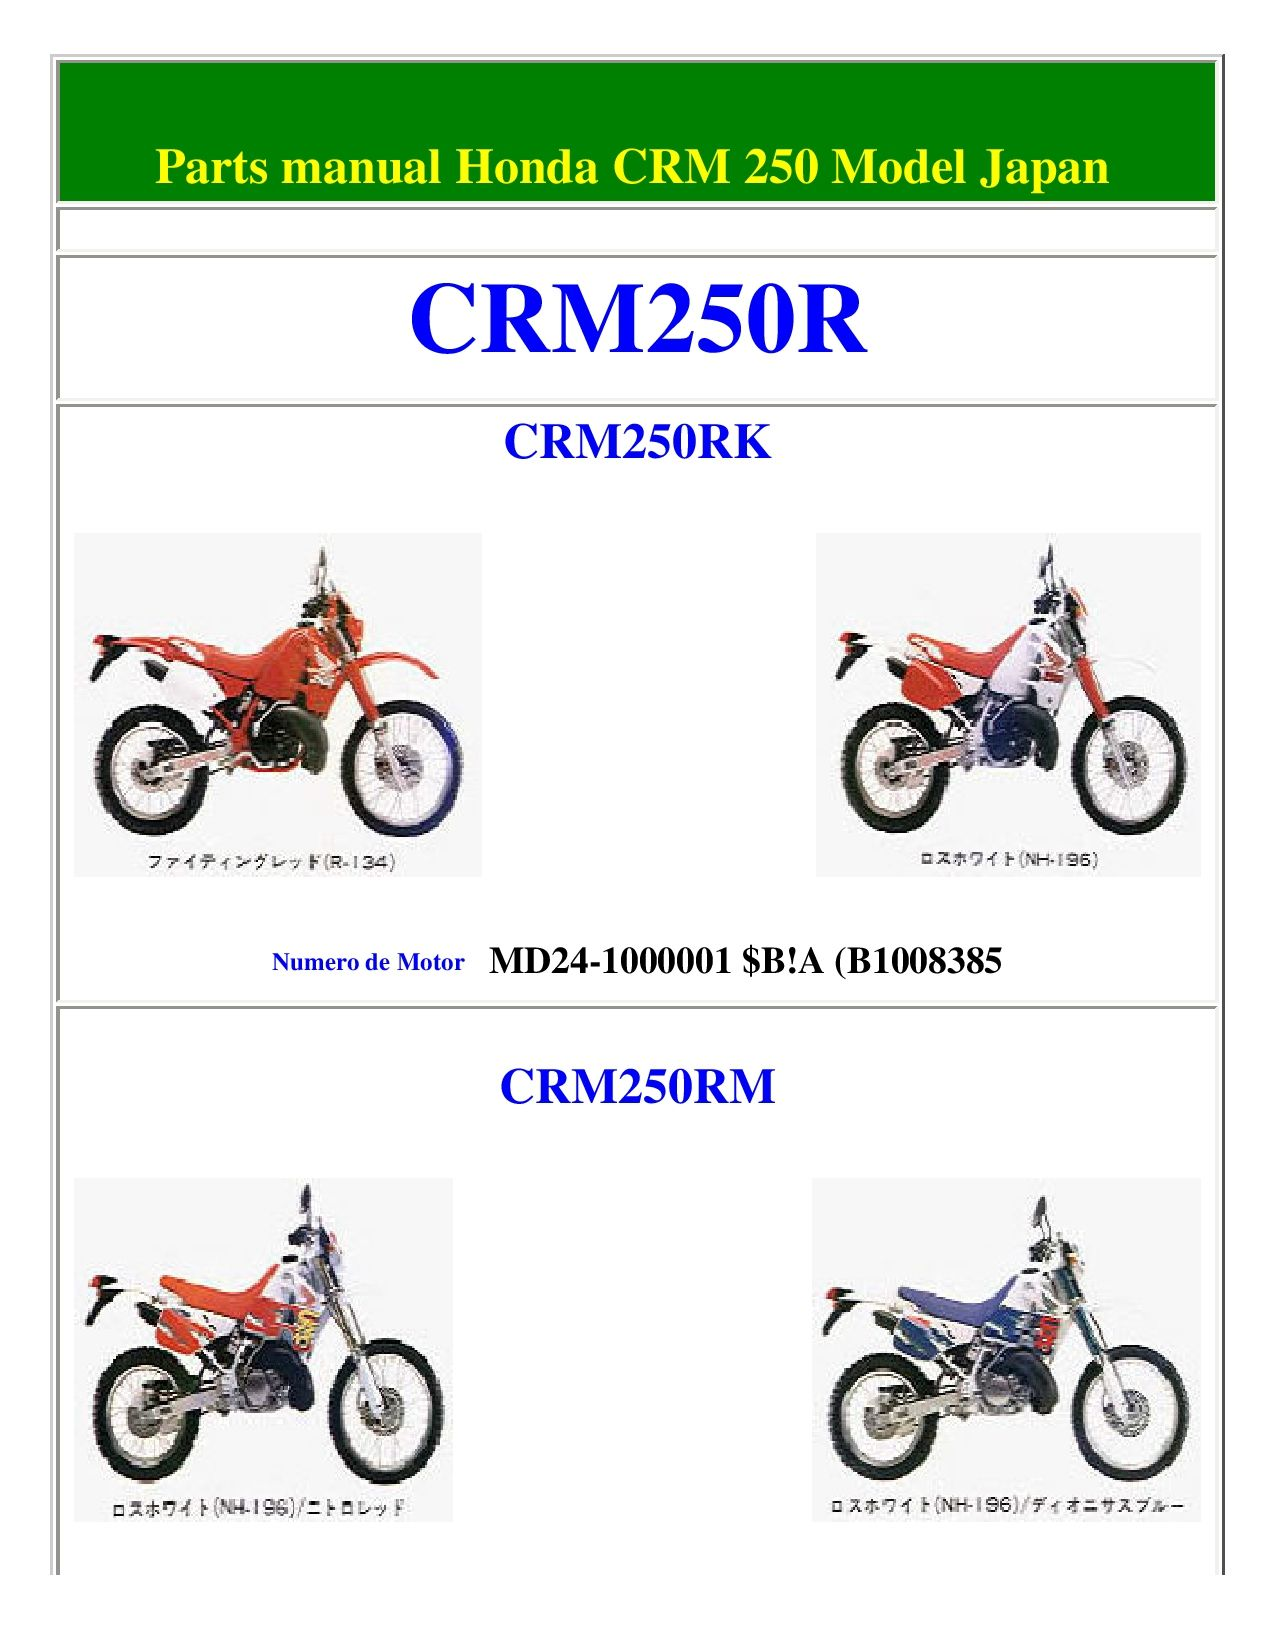 Honda Crm 250 Parts List Pdf Download Service Manual Repair Manual Pdf Download Repair Manuals Crm Pdf Download